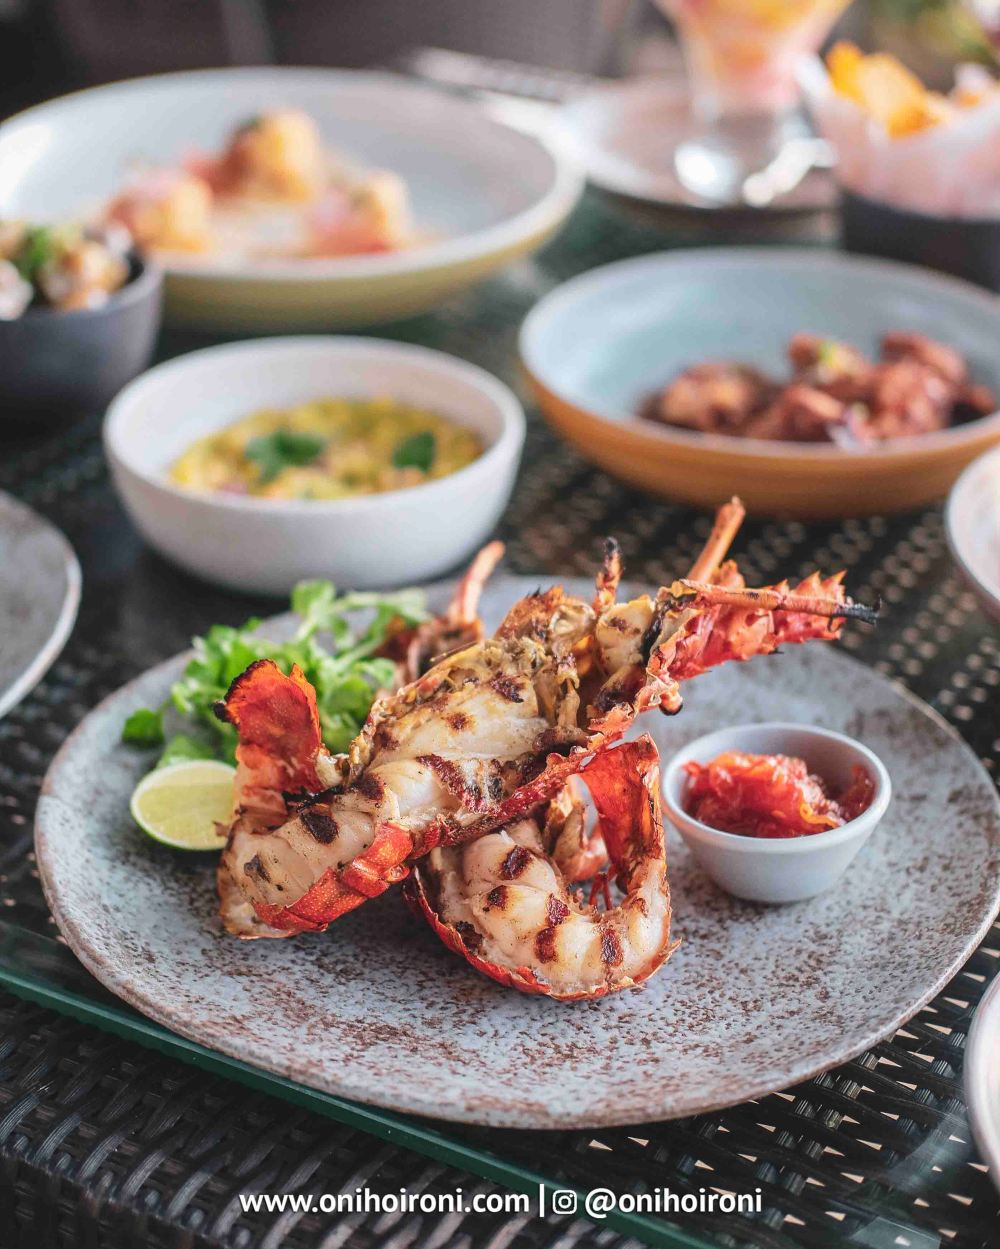 1 food makanan Sunset beach bar and grill intercontinental bali resort oni hoironi restaurant di jimbaran